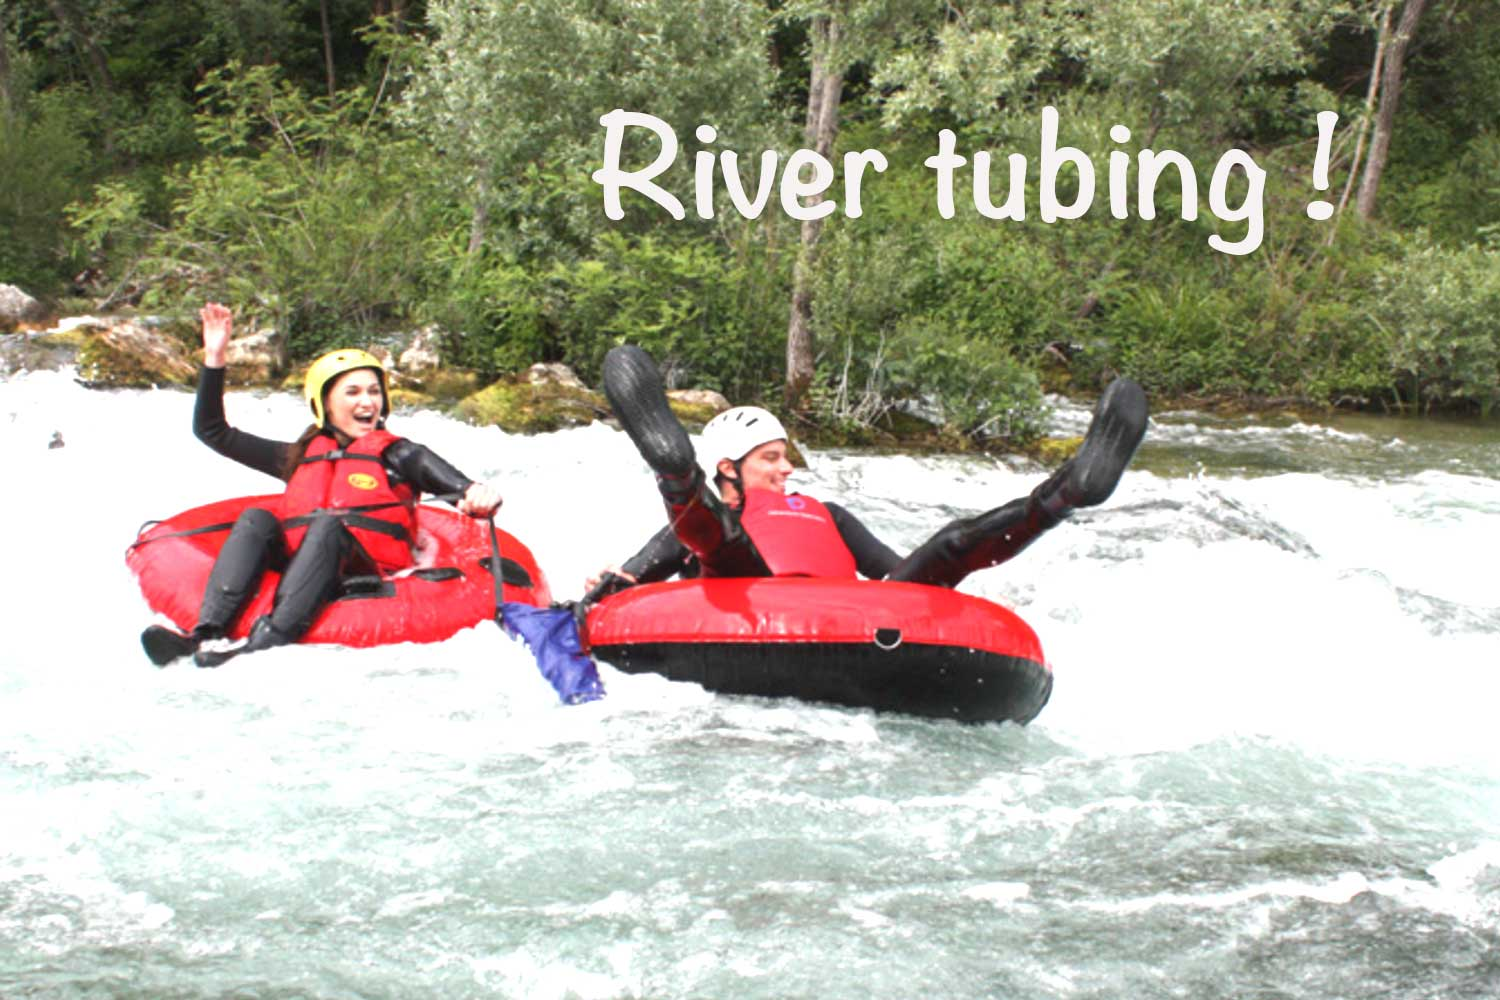 River tubing as part of a Croatia water sports holiday for families